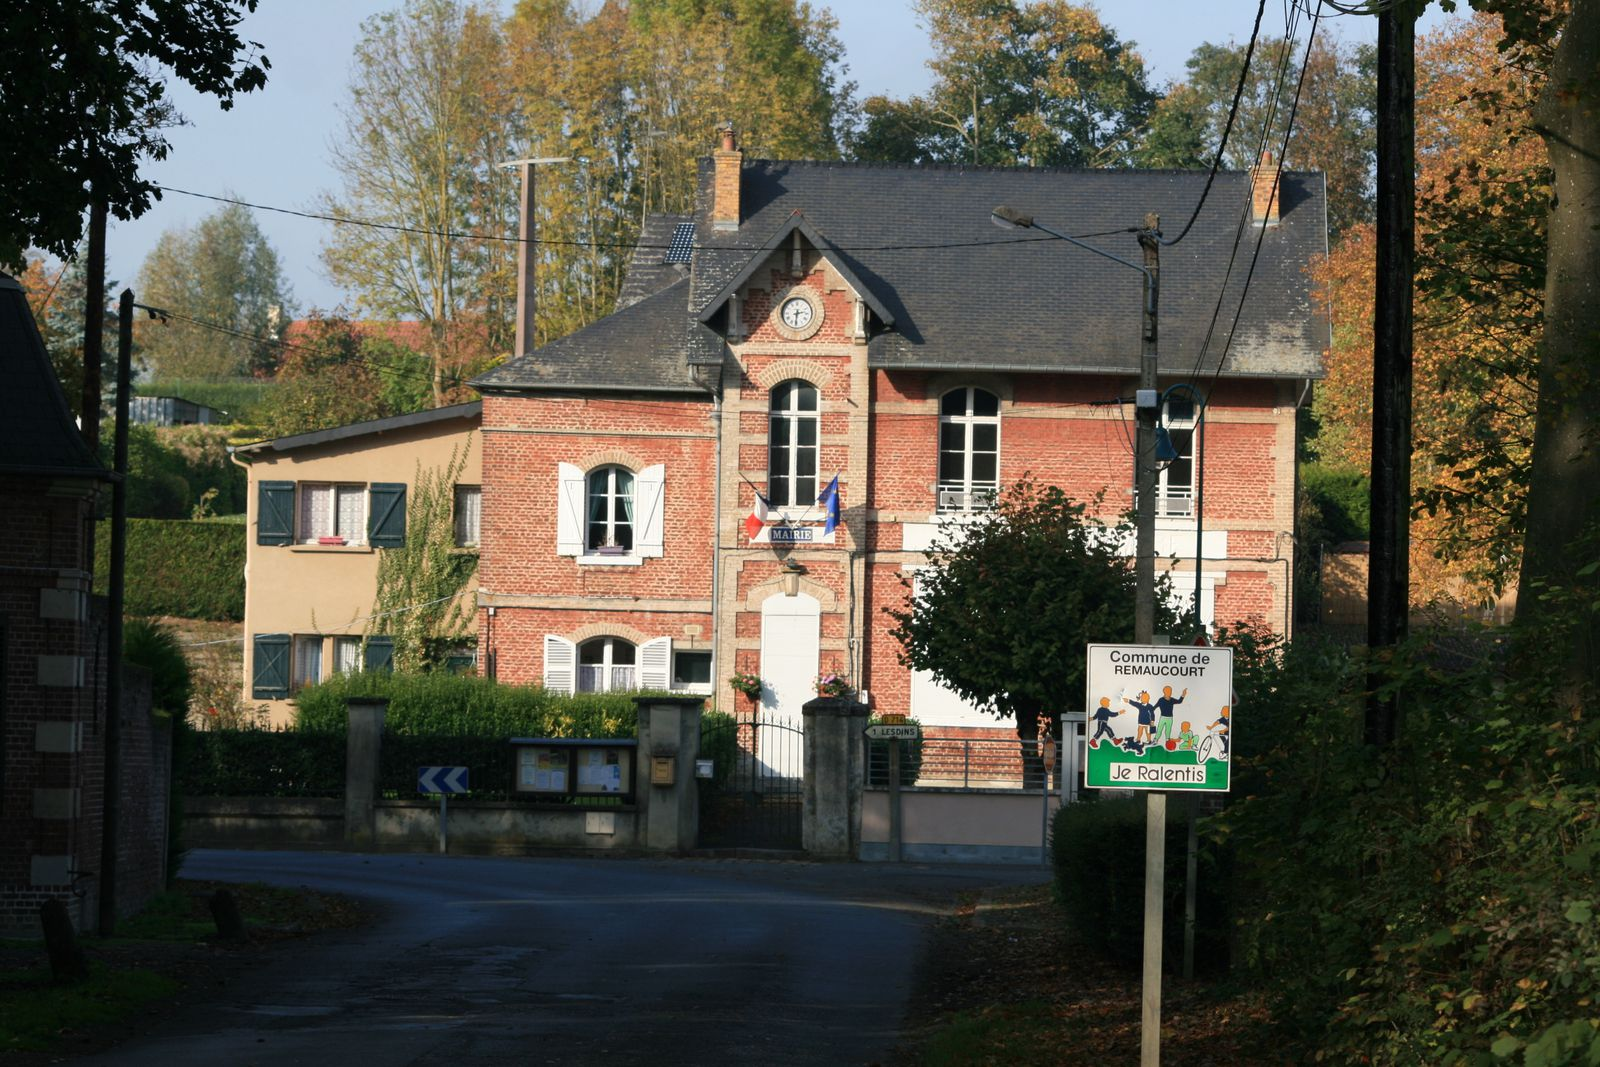 Mairie de Remaucourt